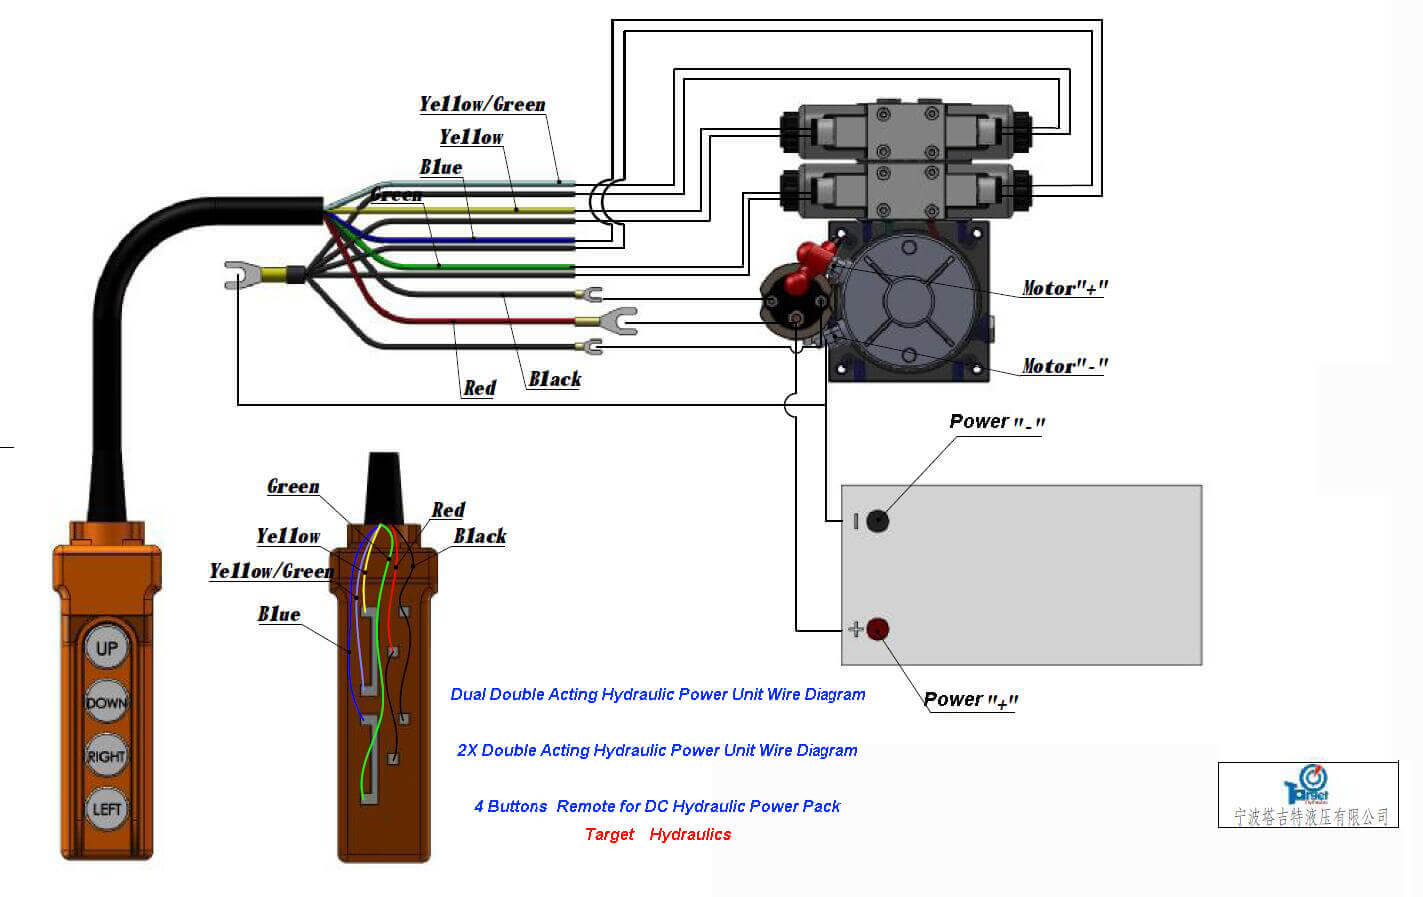 dual double acting hydraulic cylinder Power Units Wiring Diagram drawing how to wire hydraulic power pack,power unit diagram design wiring diagram for hydraulic dump trailer at sewacar.co